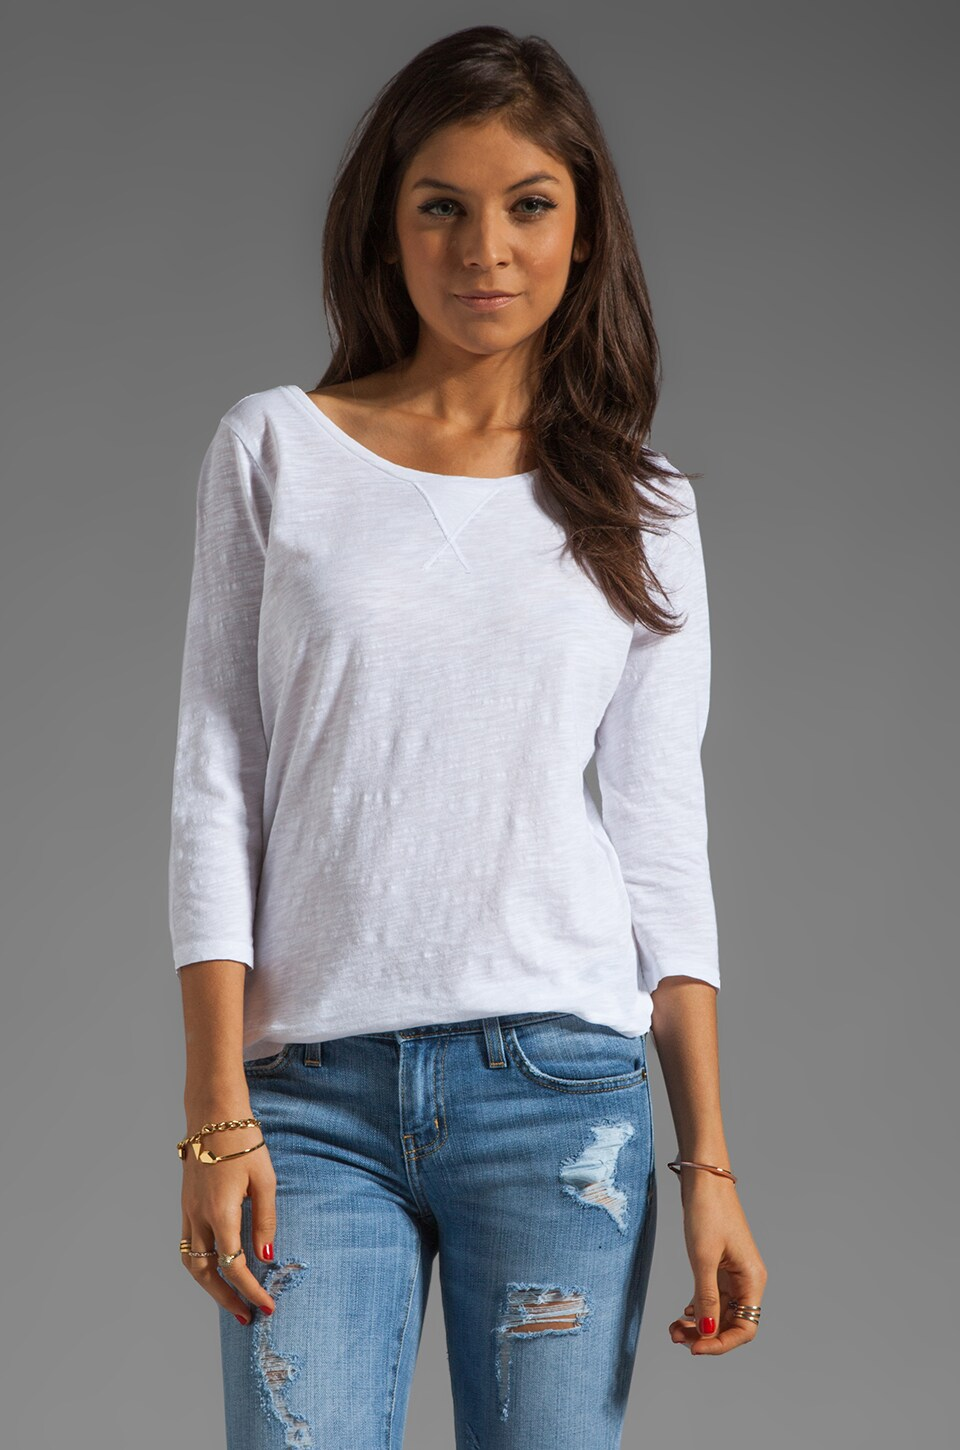 AG Adriano Goldschmied 3/4 Sleeve Scoop Neck in White